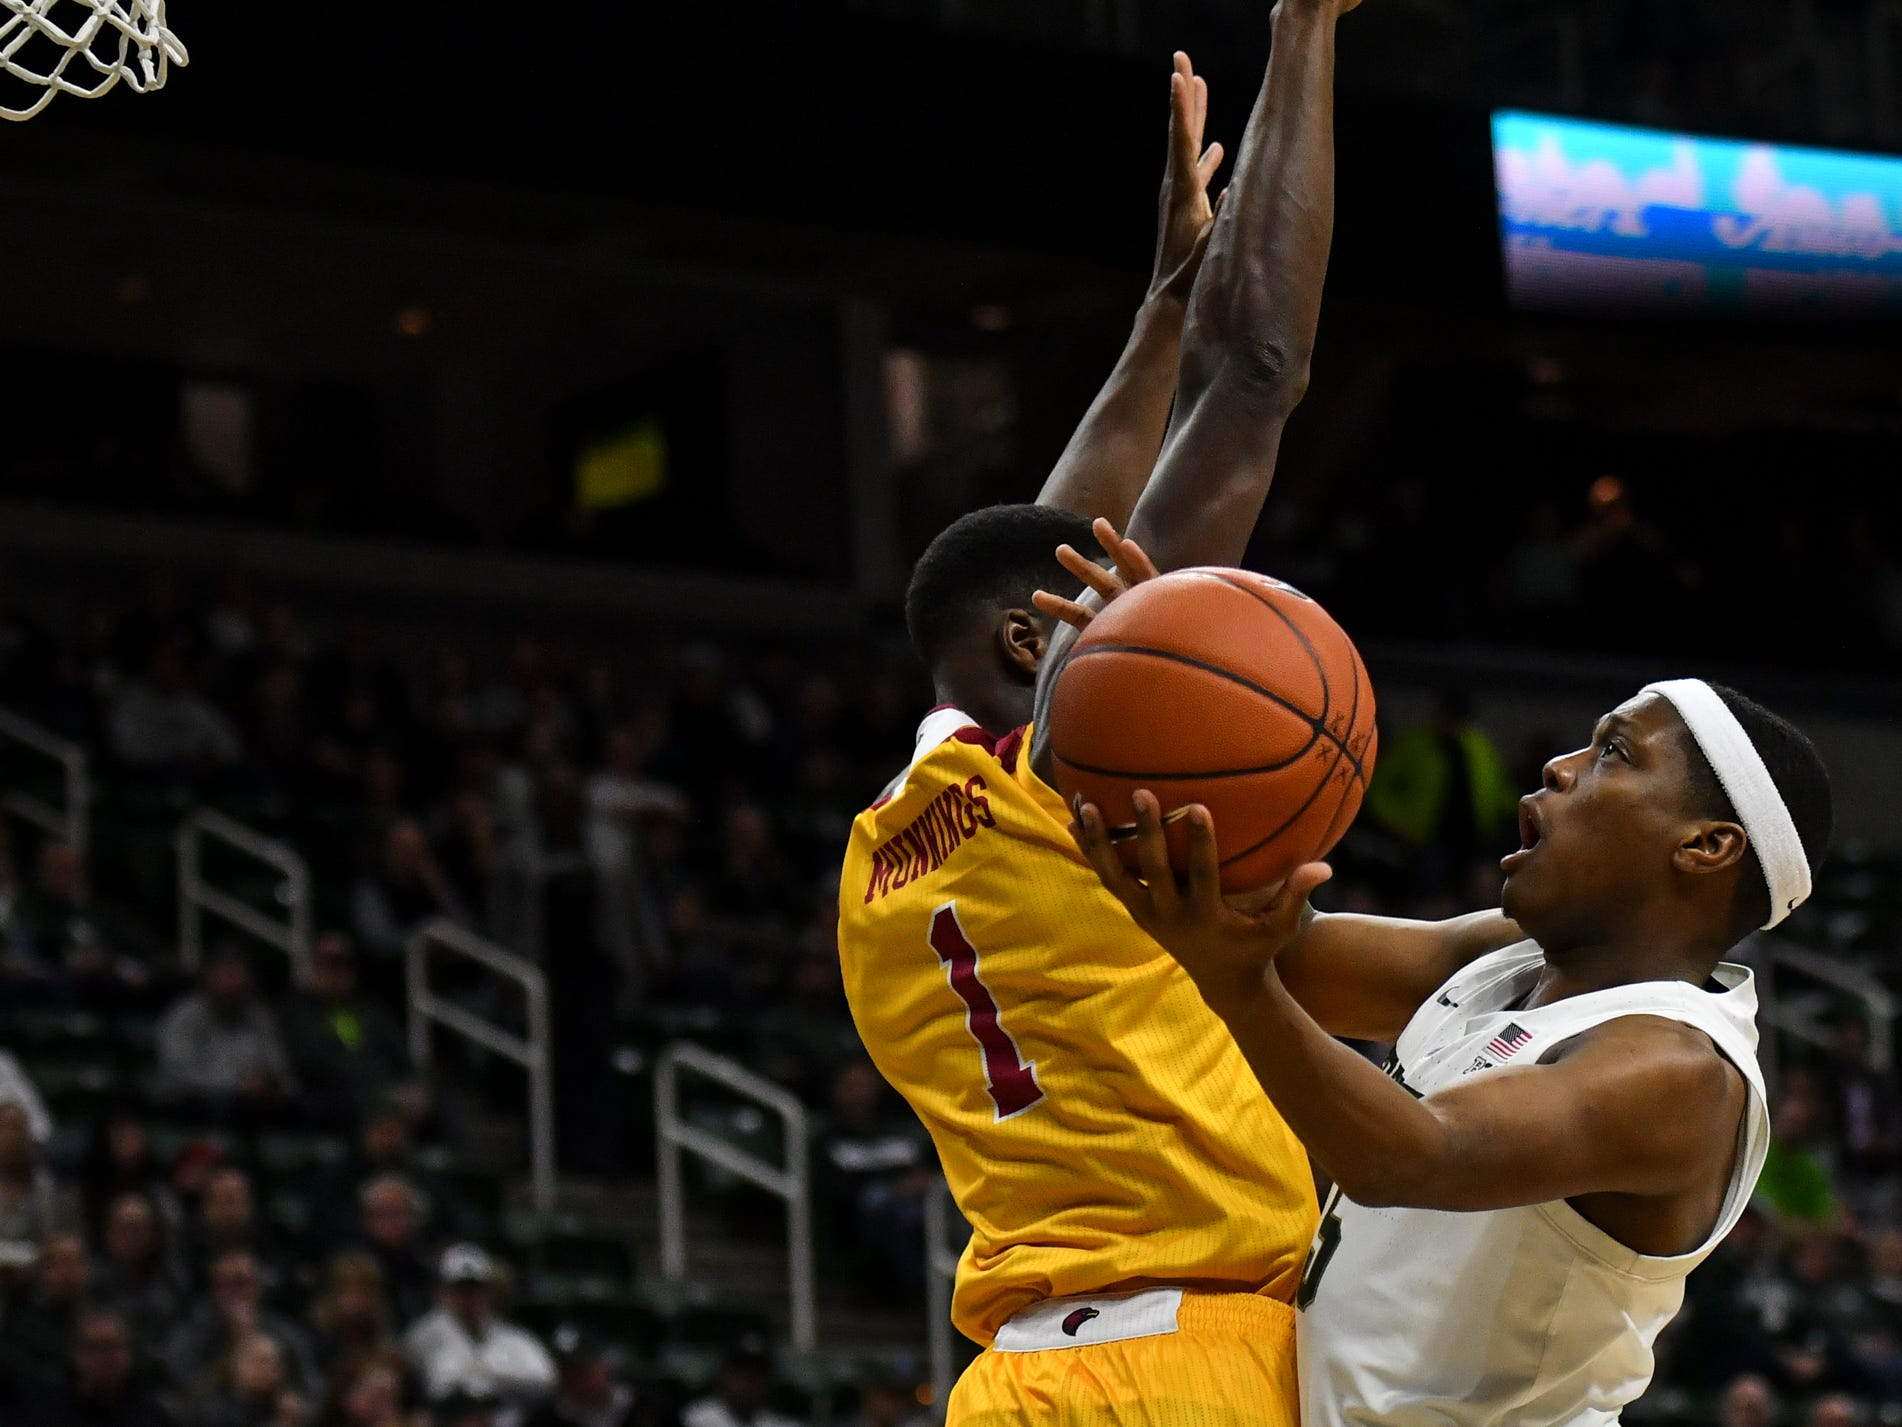 Cassius Winston, right, of MSU drops in two against Louisiana-Monroe's Travis Munnings Wednesday, Nov. 14, 2018, at the Breslin Center.  MSU won 80-59.